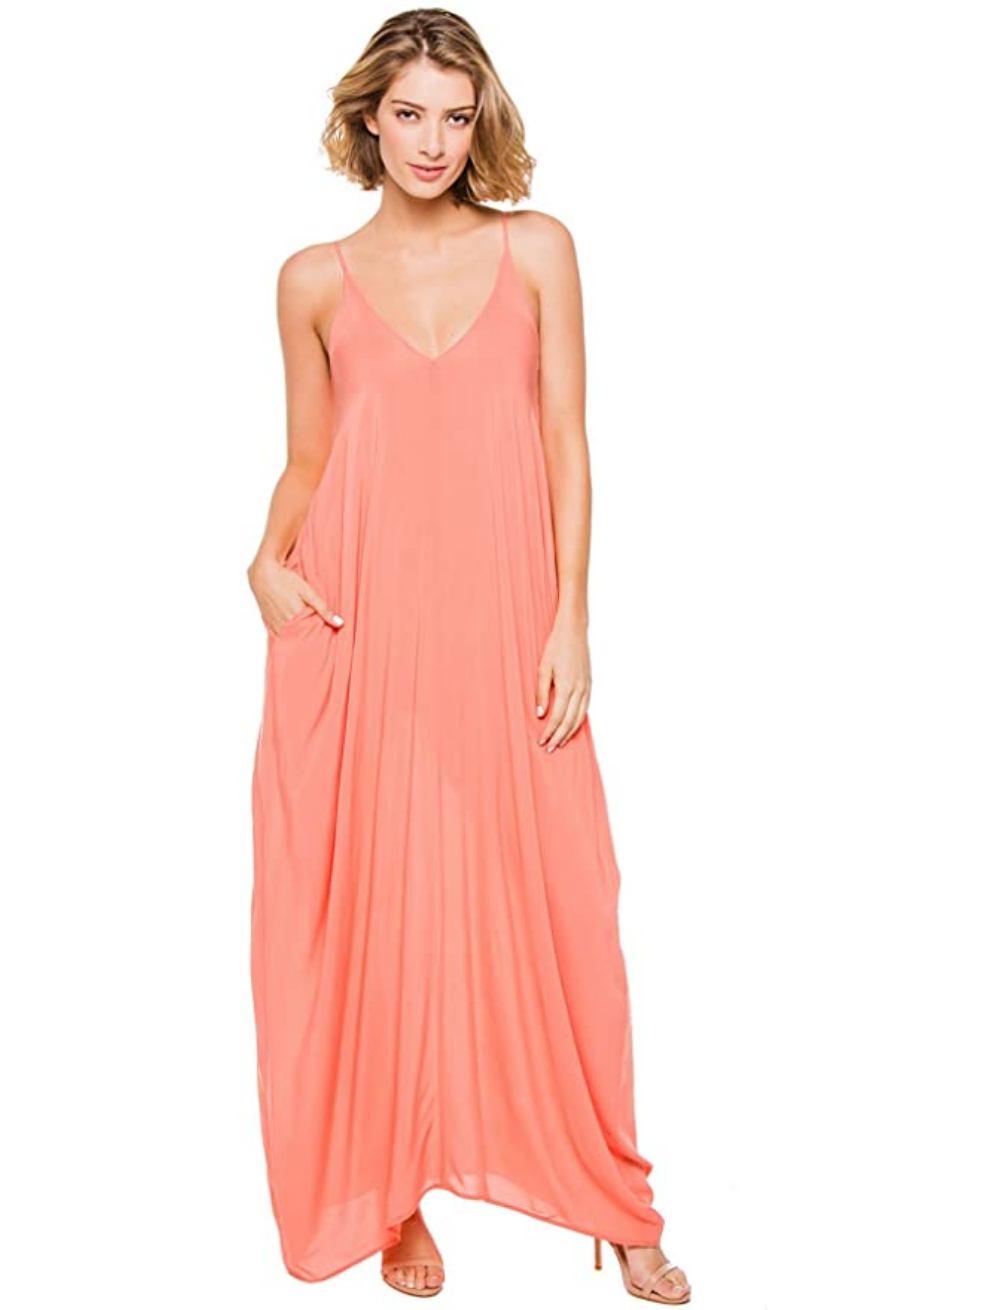 Elan Balloon Bottom Maxi Dress